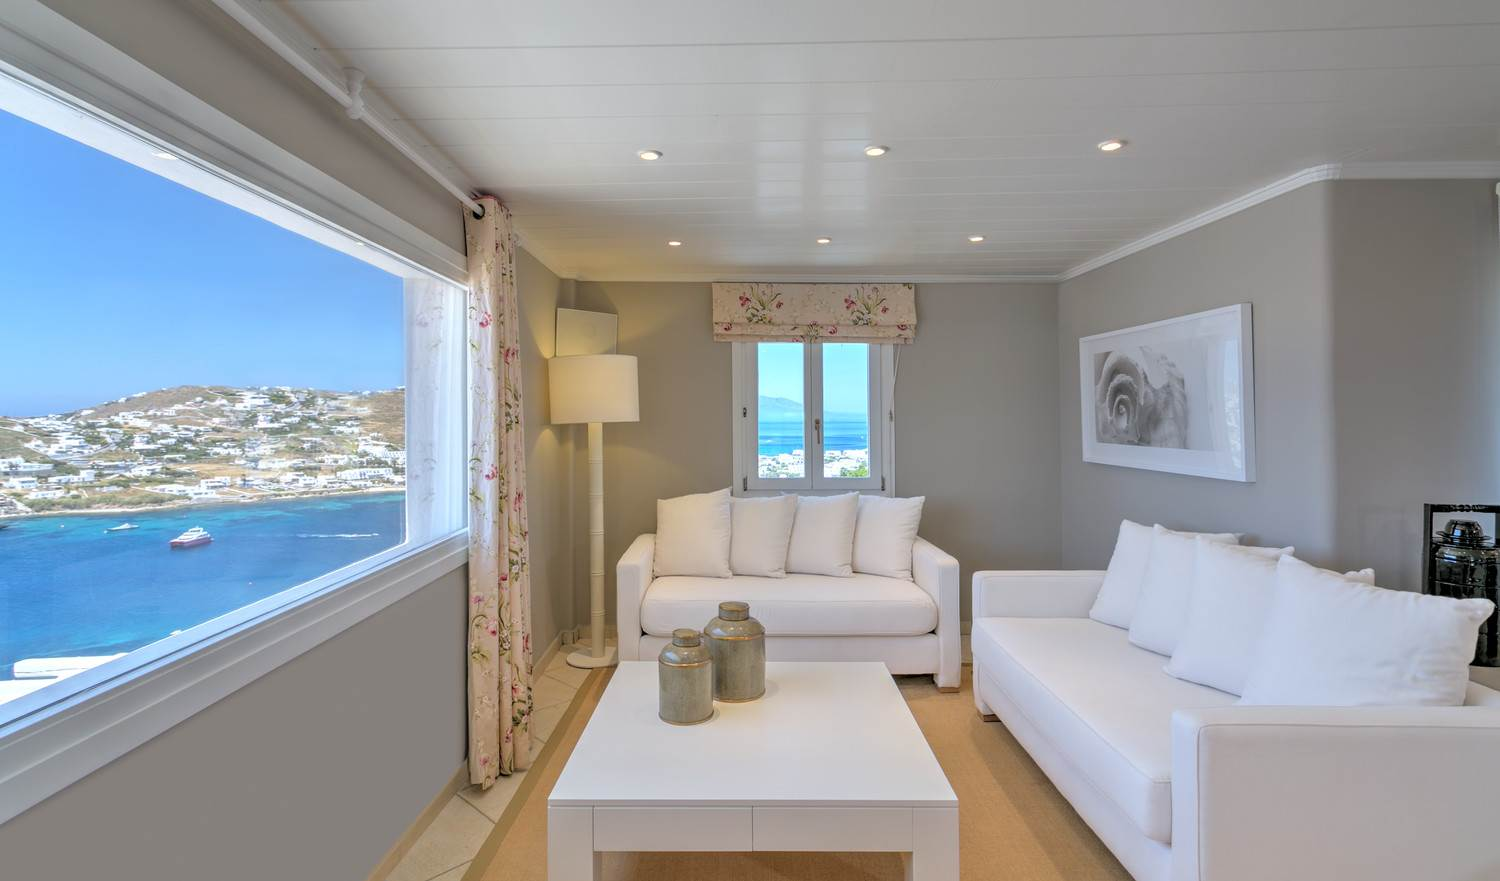 Holiday Let Apartment To Rent In Mykonos Greece A